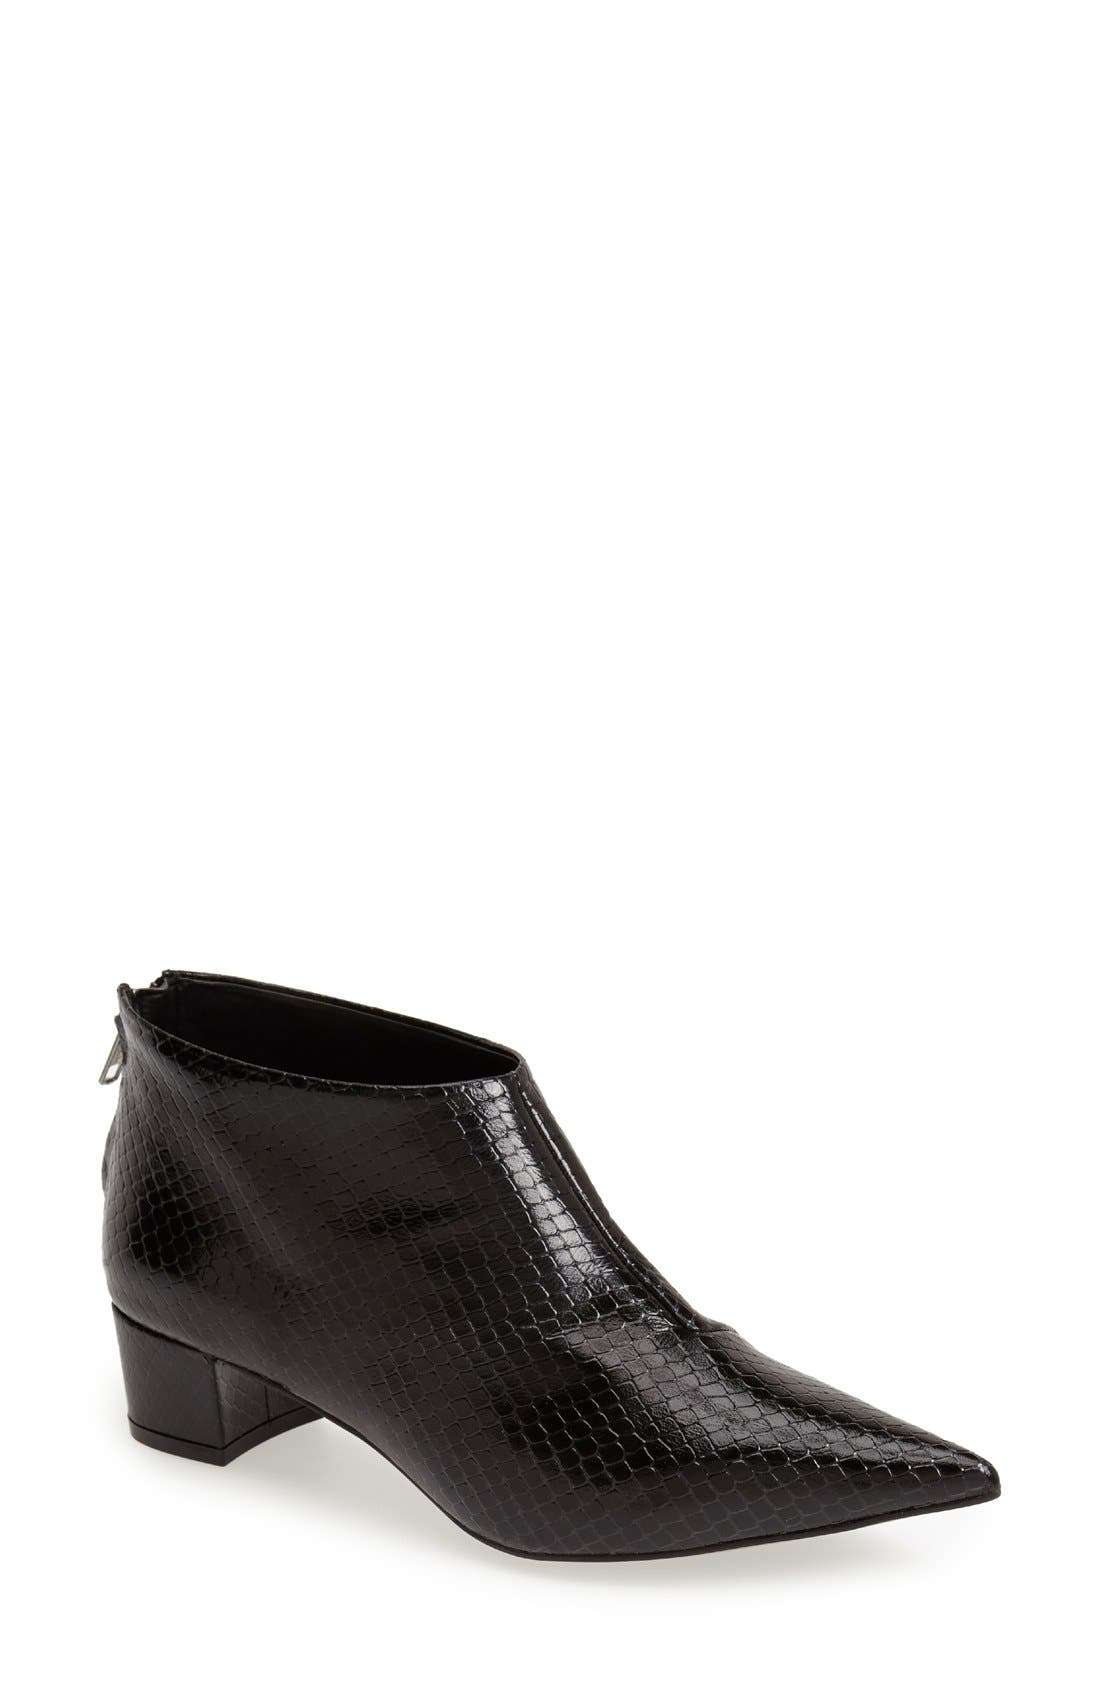 Main Image - Topshop 'Ashley' Pointy Toe Leather Ankle Boot (Women)